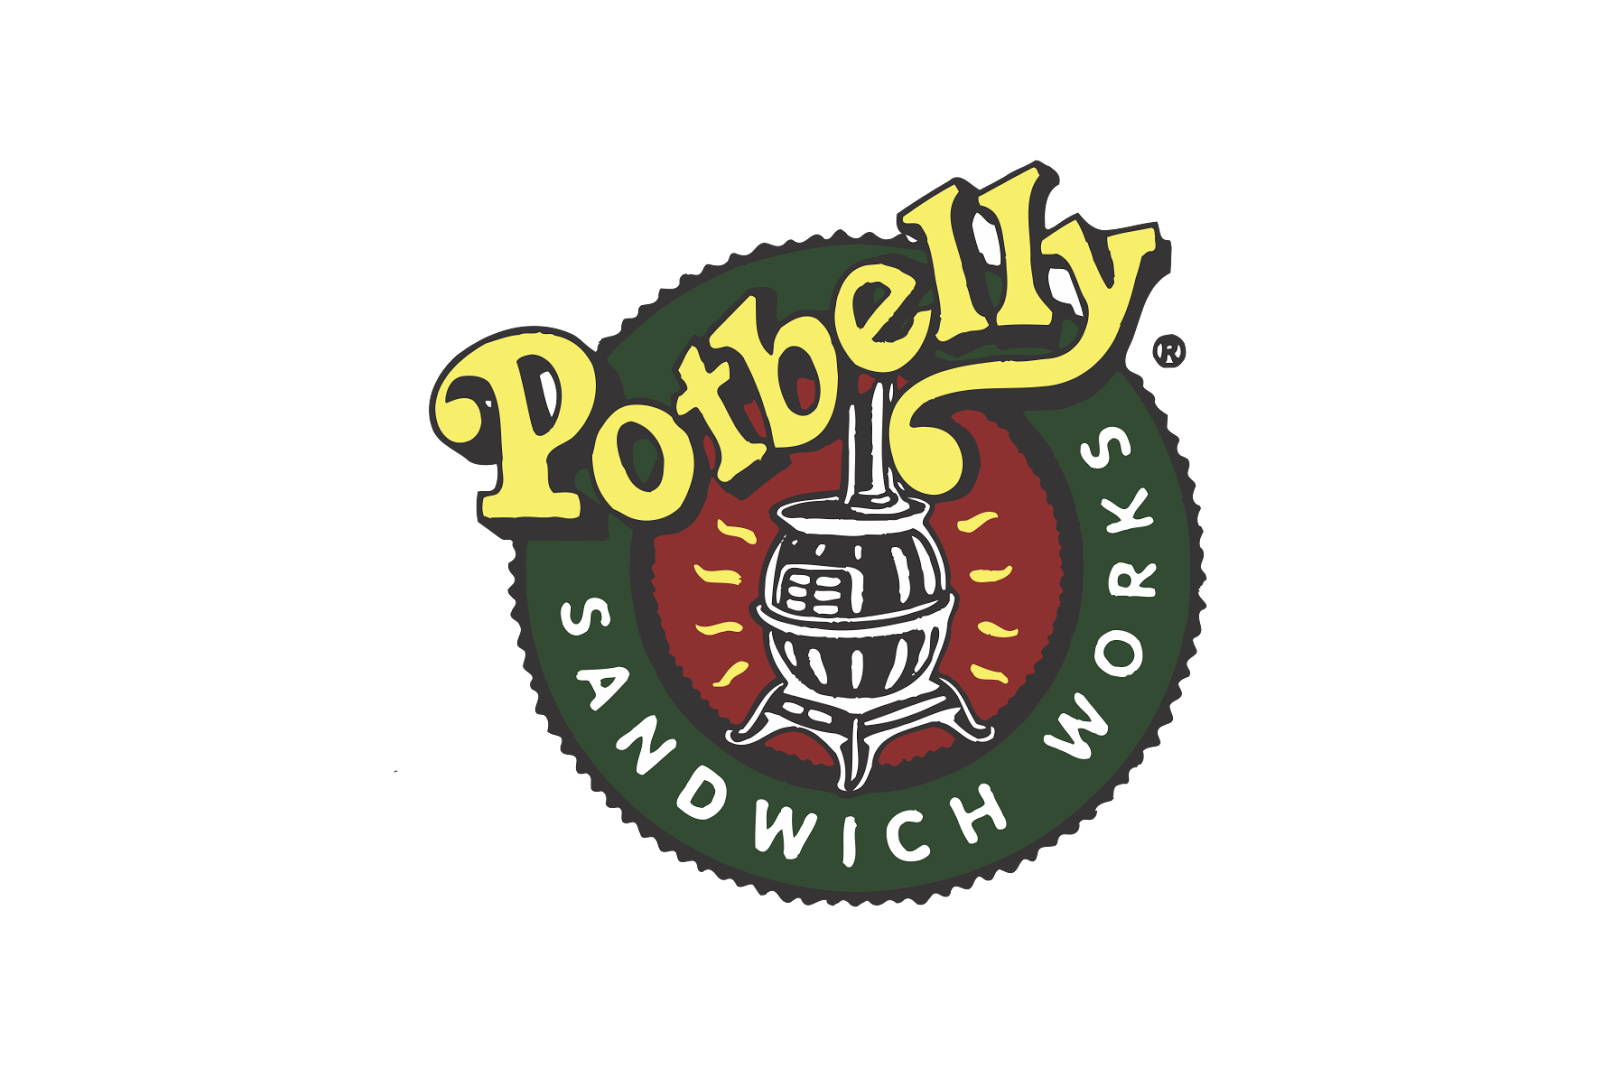 potbelly sandwich works Print out coupons for potbelly sandwich shop befrugal updates printable coupons for potbelly sandwich shop every day print the coupons below and take to a participating potbelly sandwich shop to save.